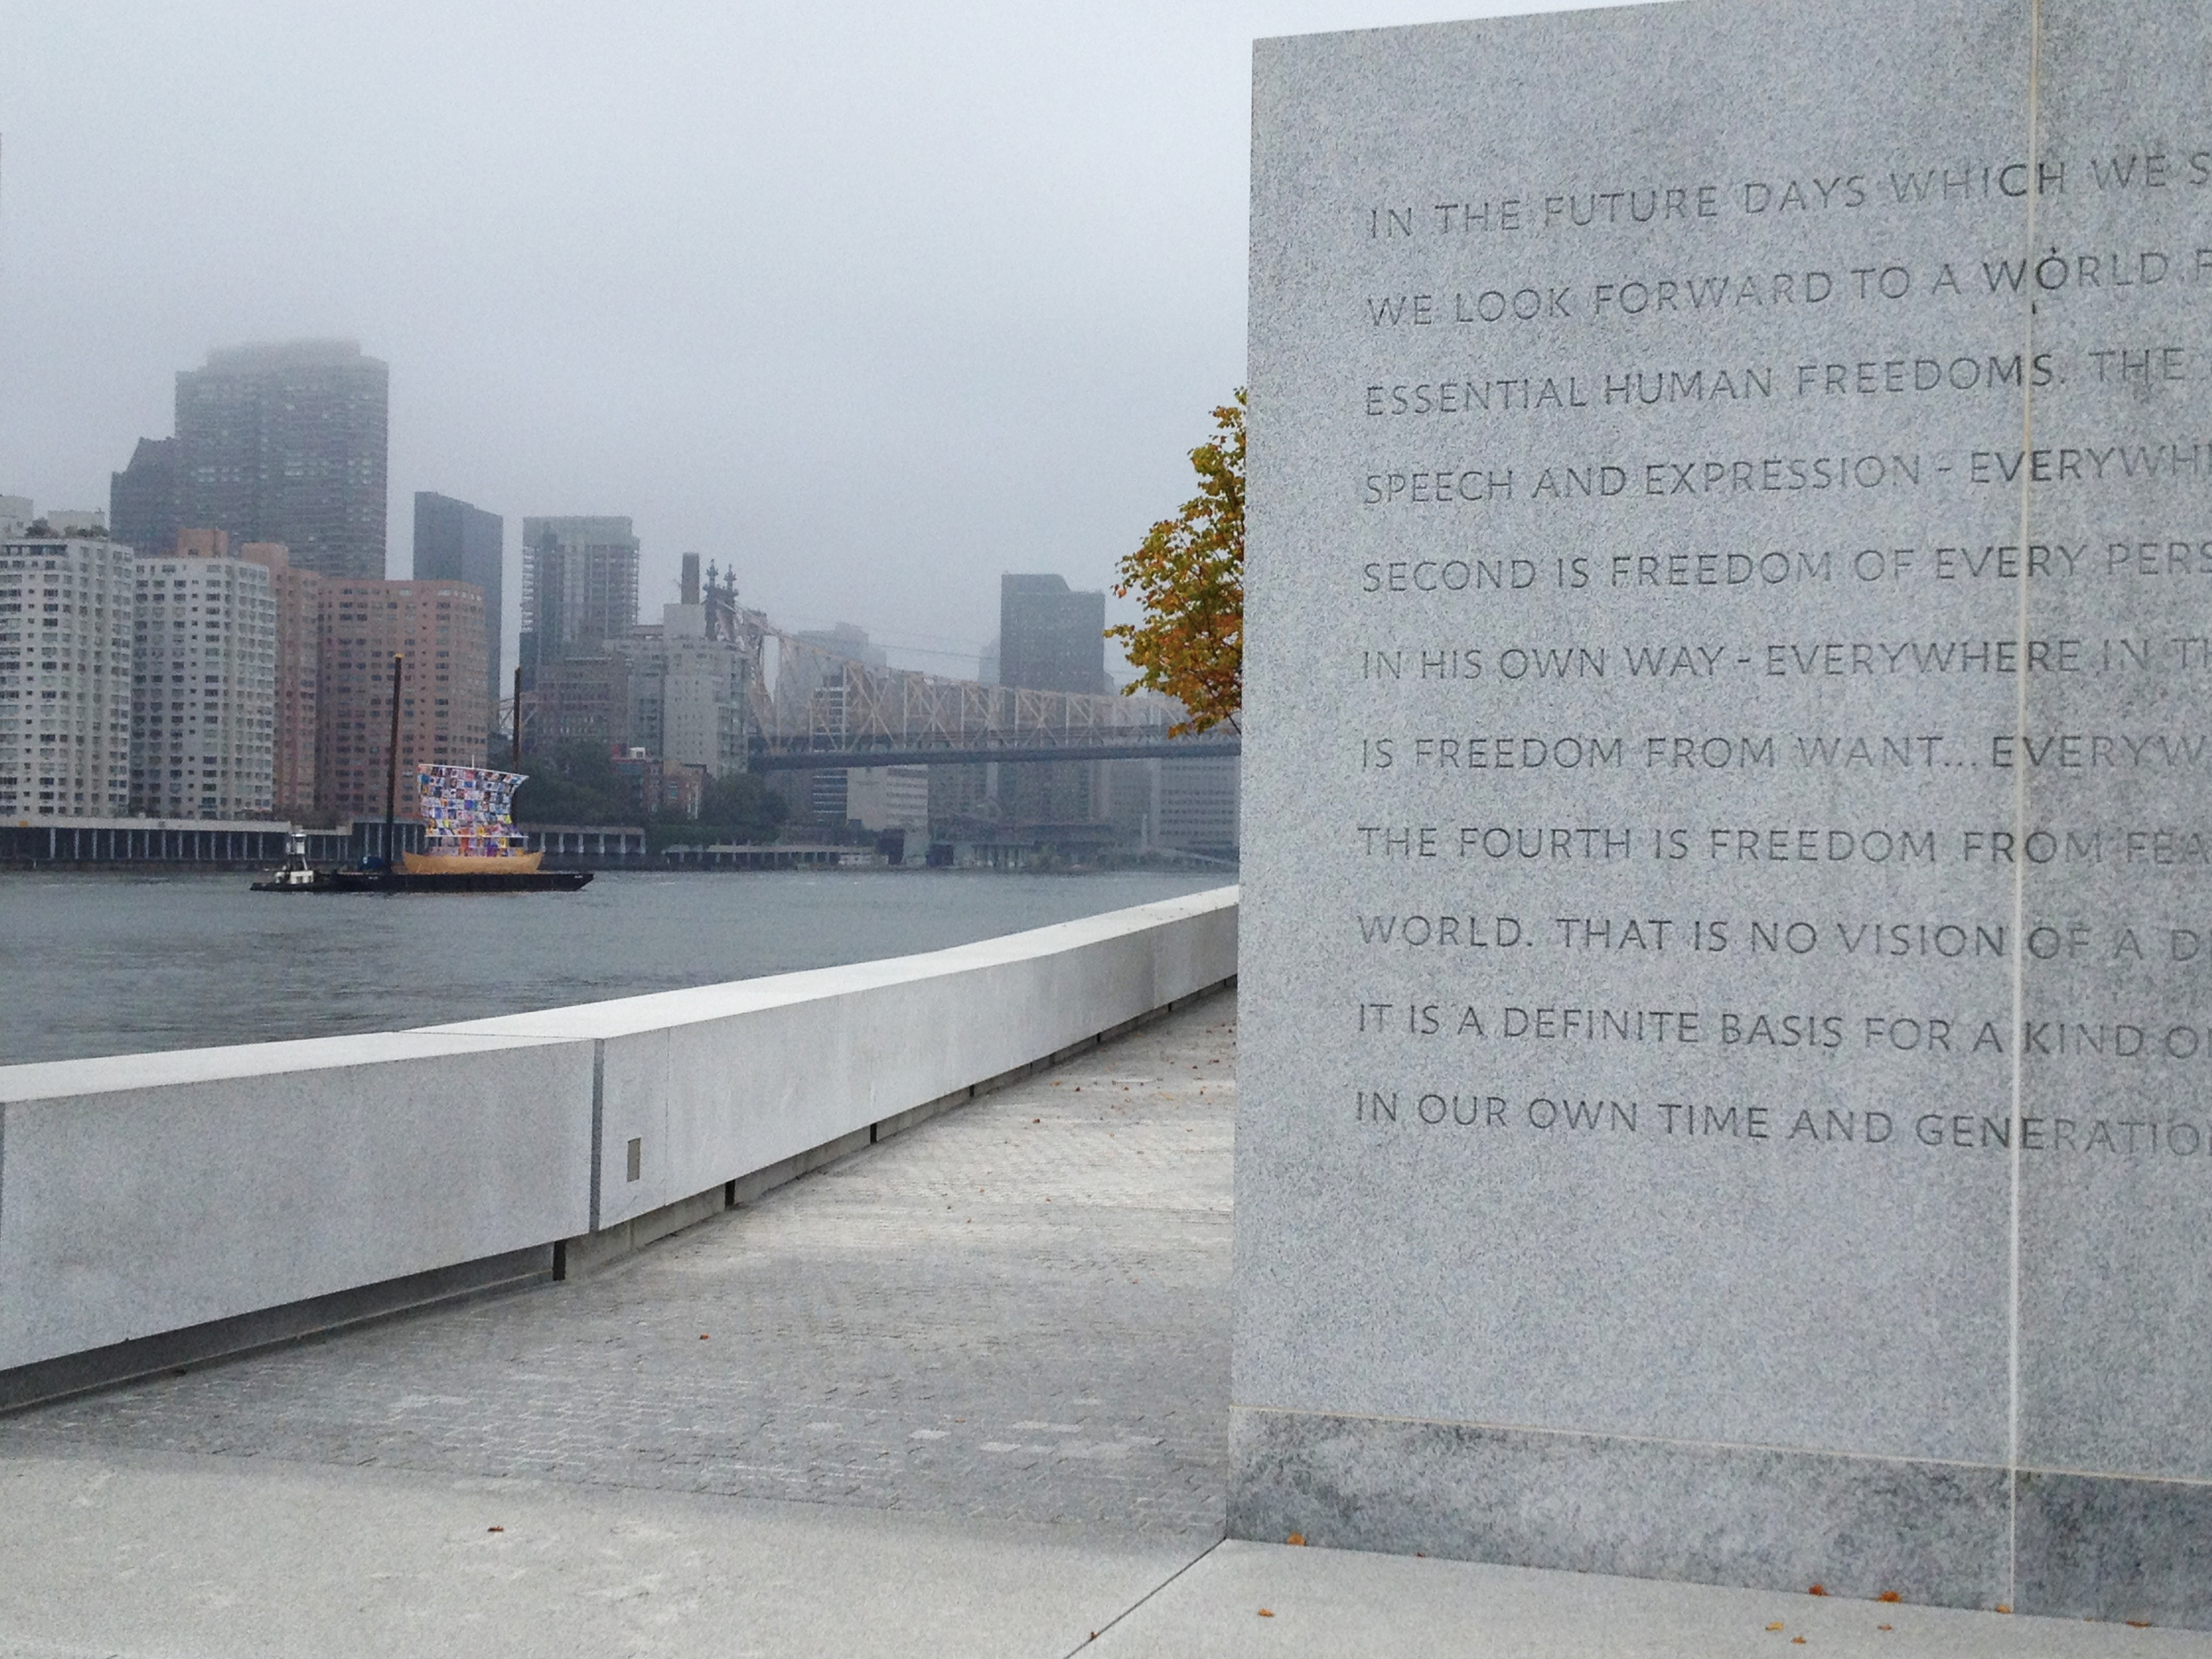 The Ship of Tolerance circled the Island as Park visitors watched from Four Freedoms Park.